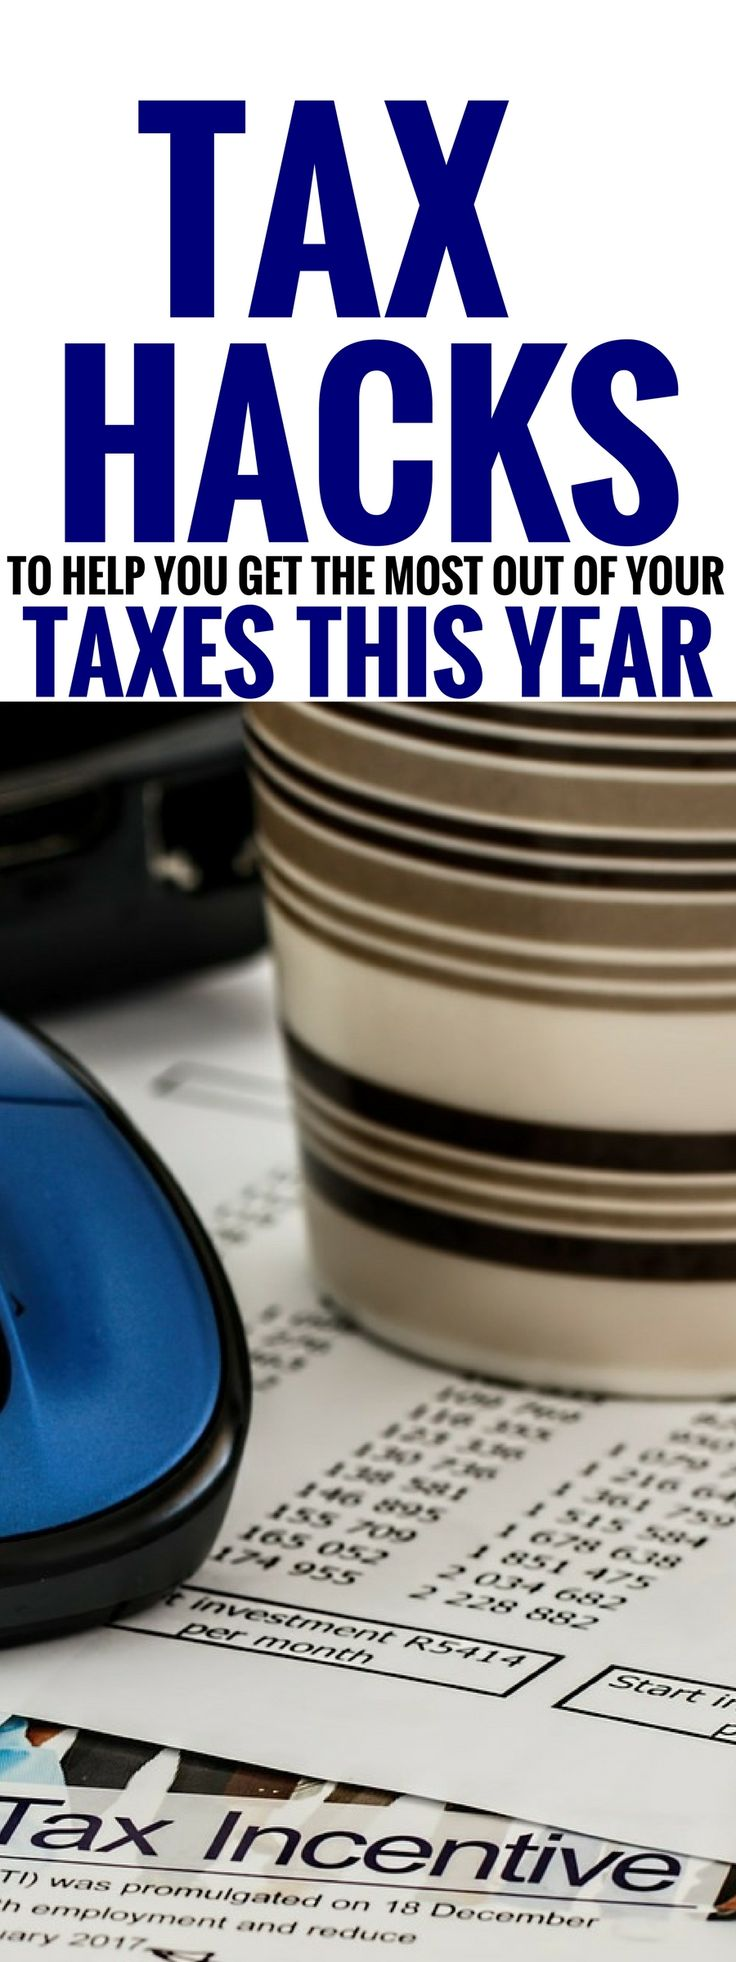 The amazing tax hacks are THE BEST! I'm so glad I learned about these tax tips, hacks and deductions for families that I would have otherwise overlooked when filing my taxes. Now I'm aware of some awesome tax deductions for tax season! Pinning this for sure! #taxday #money #moneytips